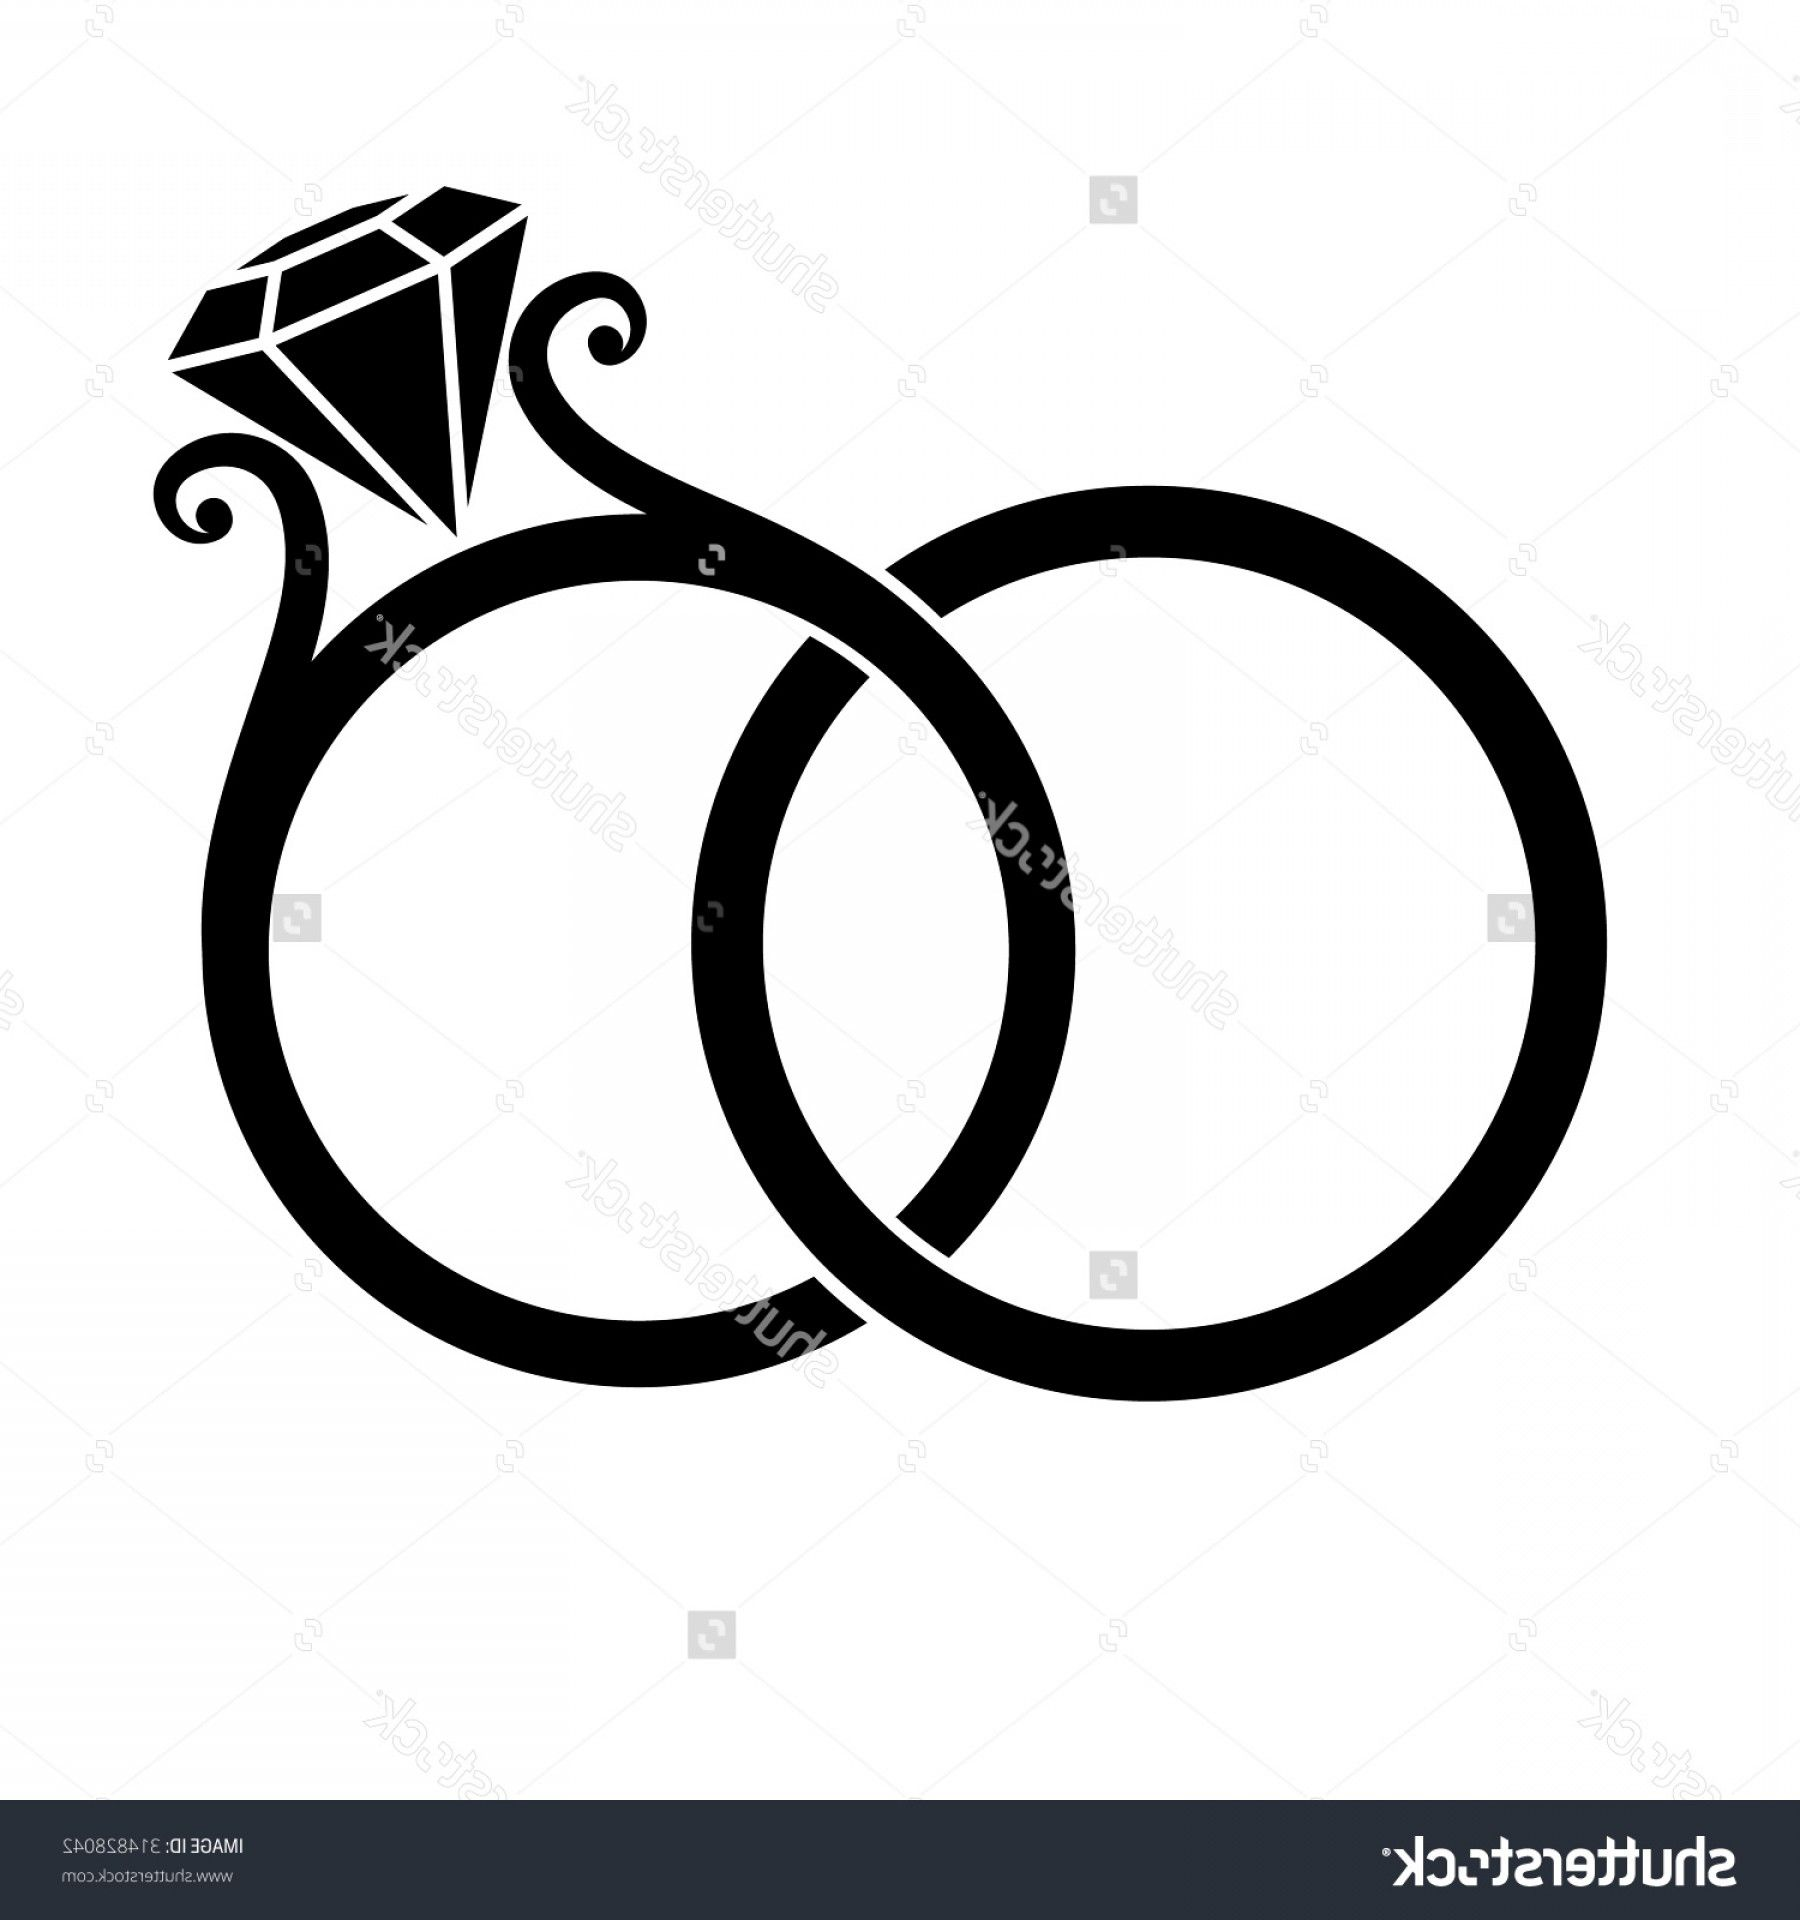 Wedding rings clipart vector clipart black and white library Wedding Clip Art Vector Graphics: Bride And Groom Silhouette ... clipart black and white library